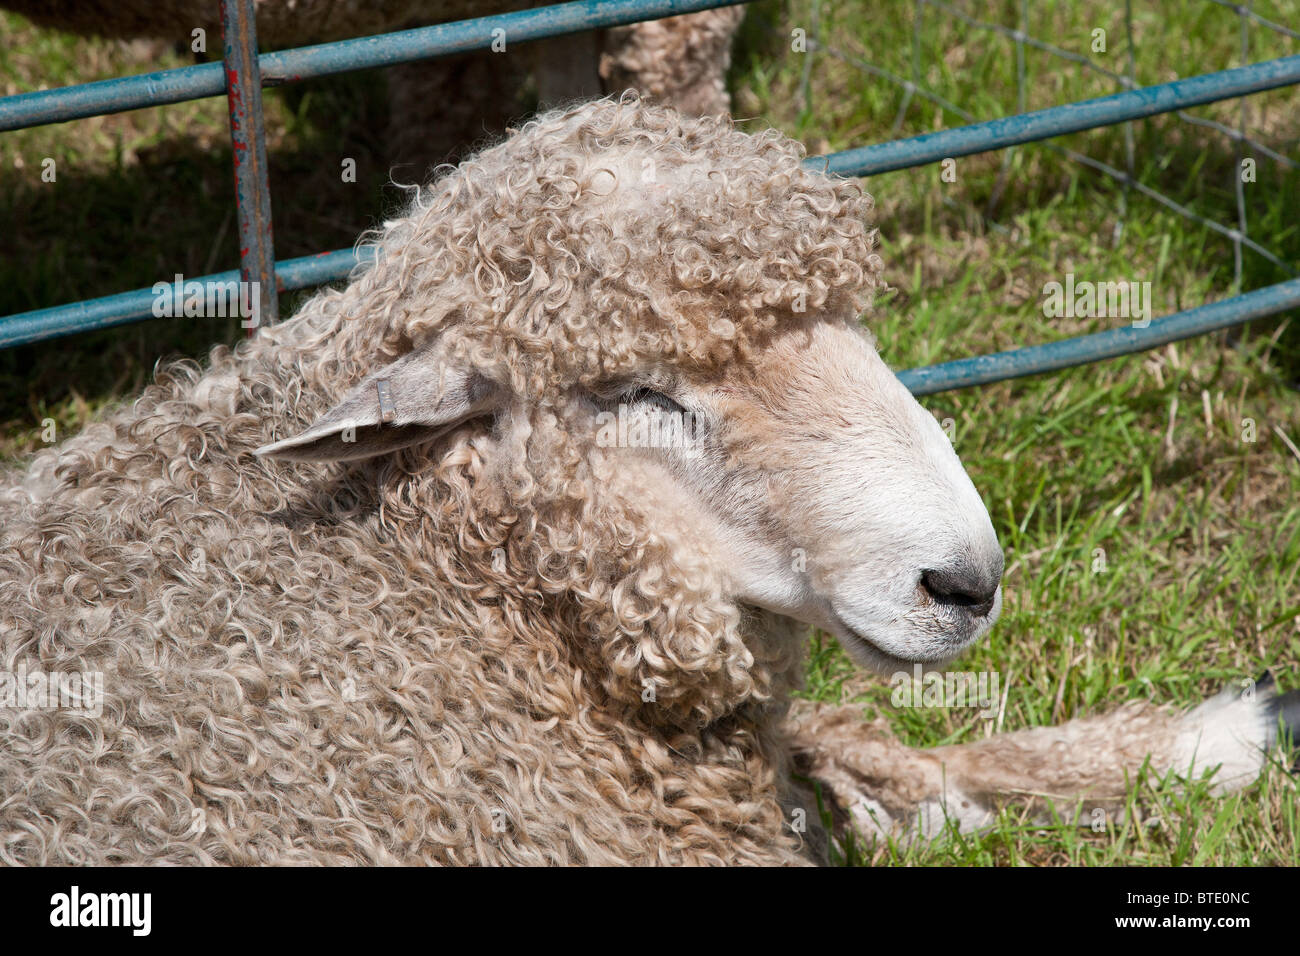 LINCOLN LONGWOOL SHEEP AT AGRICULTURAL SHOW CHEPSTOW MONMOUTHSHIRE WALES UK - Stock Image